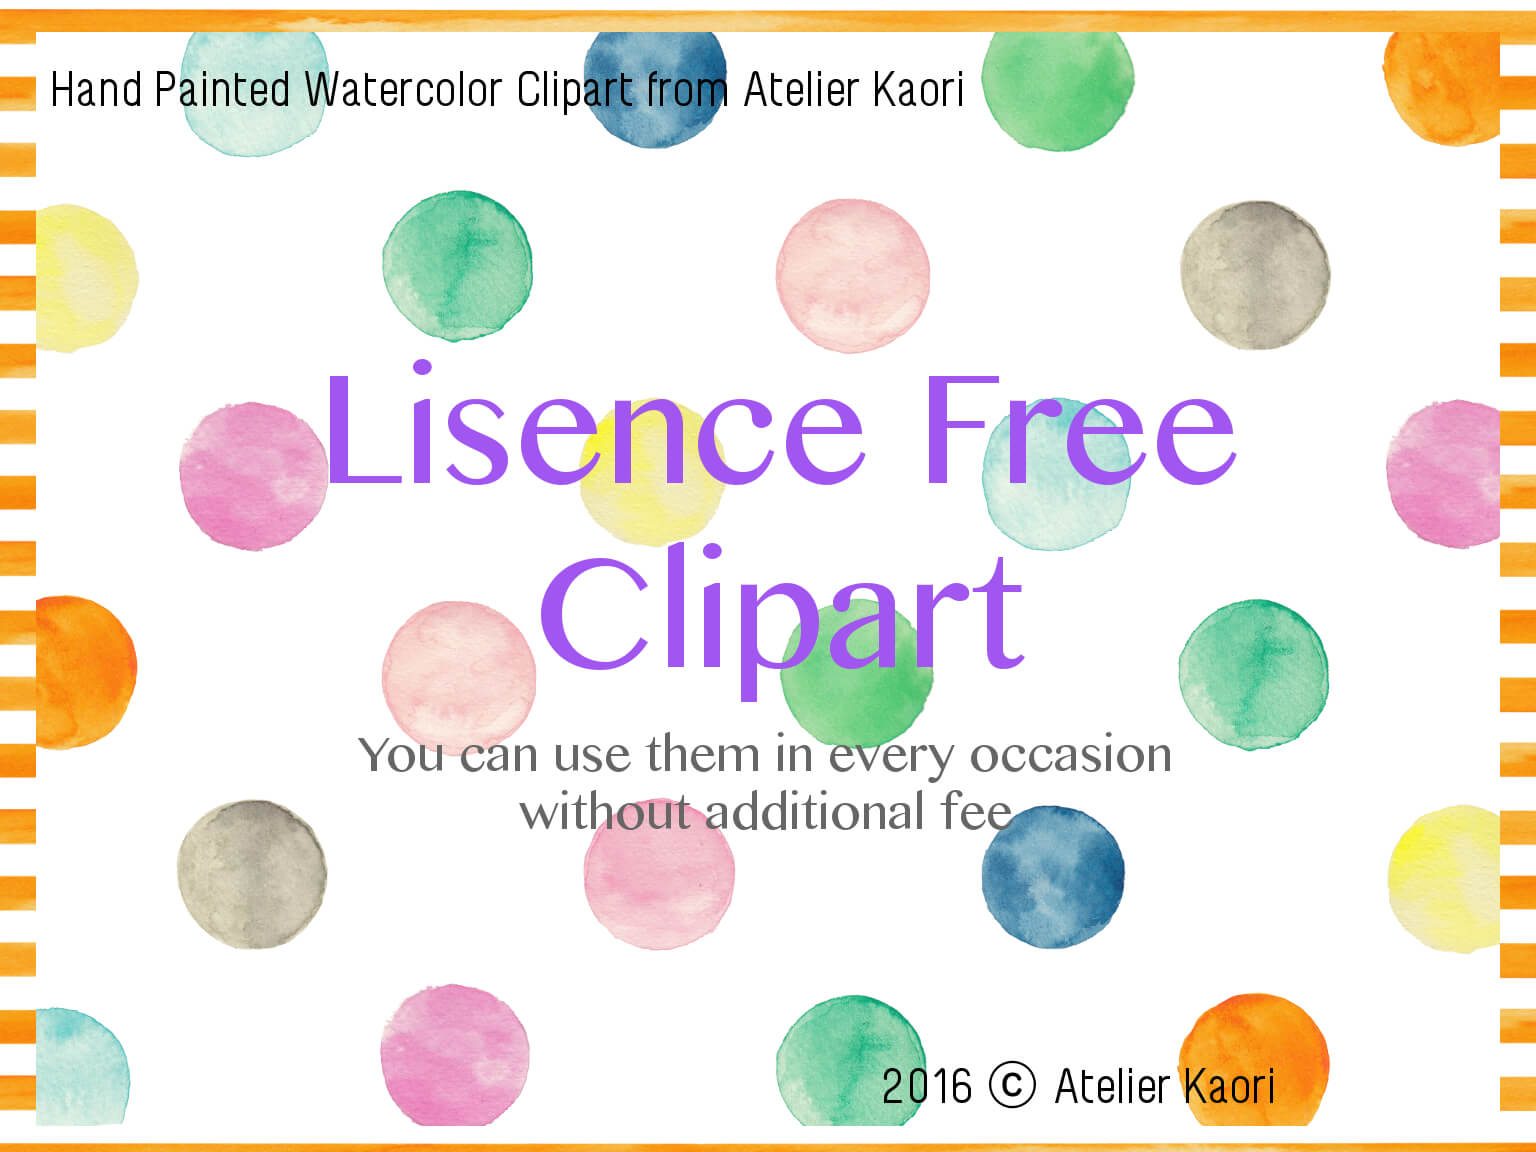 license free clipart